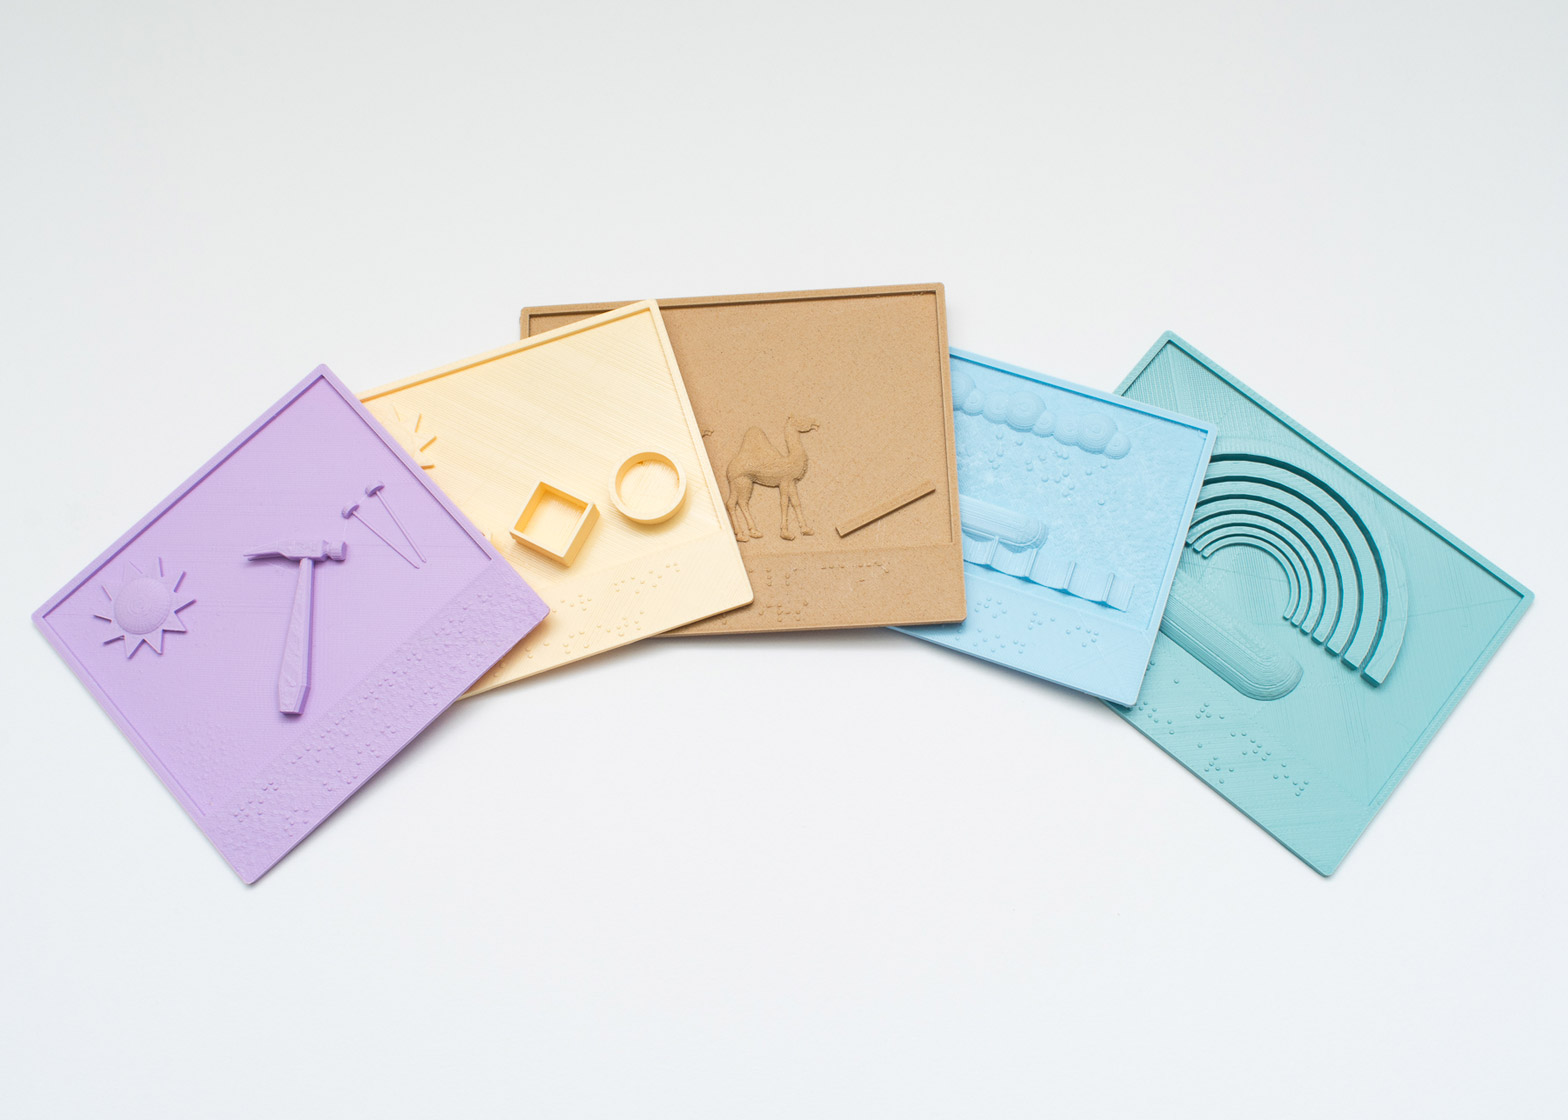 3D printed books by Tactile Picture Books